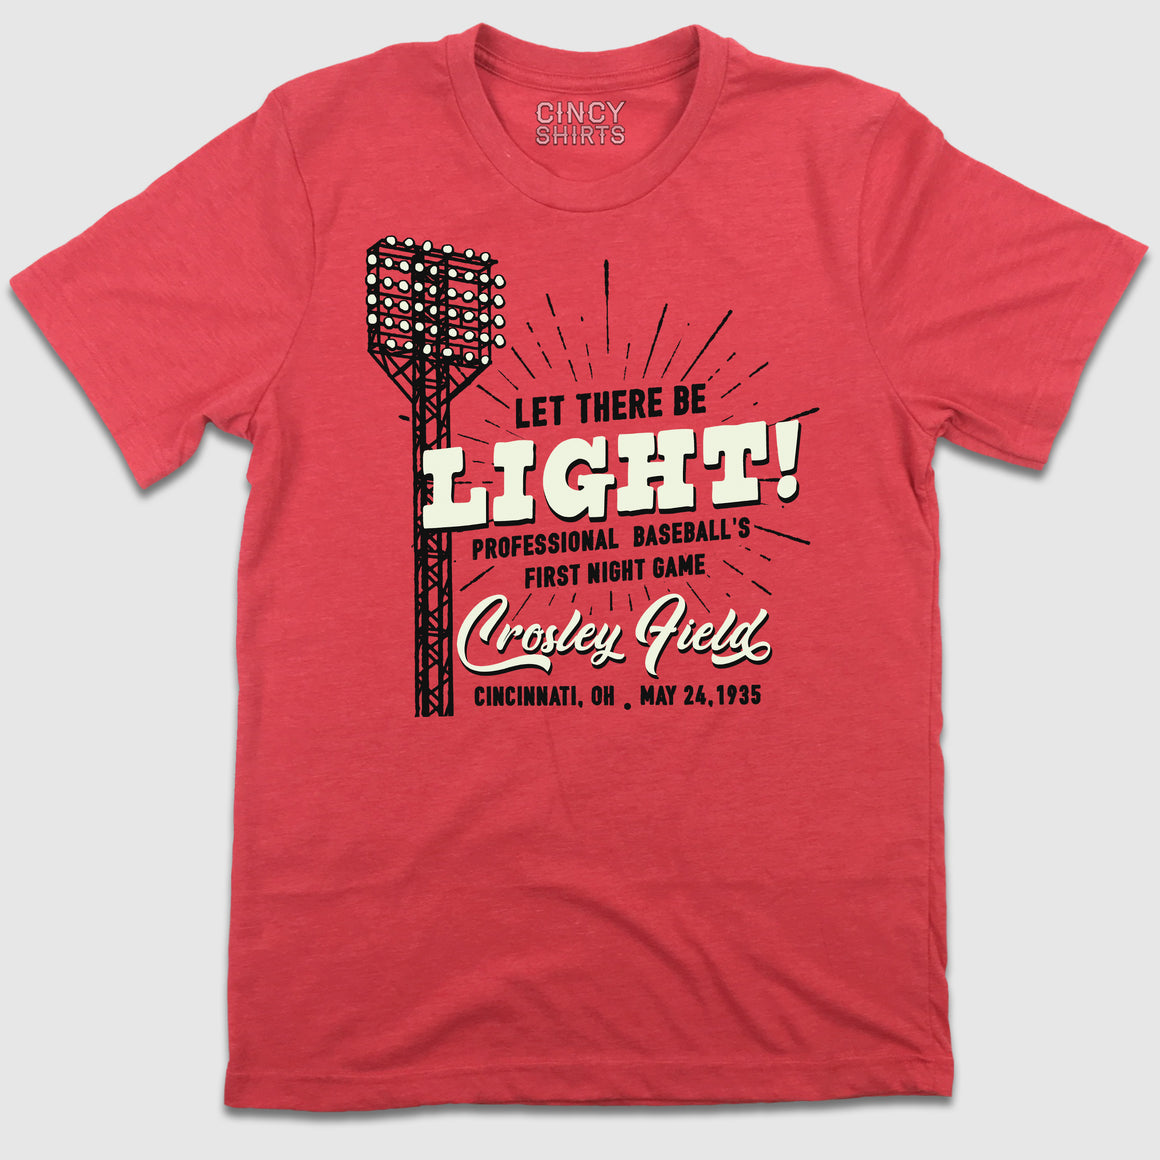 rosley Field First Night Game T-shirt